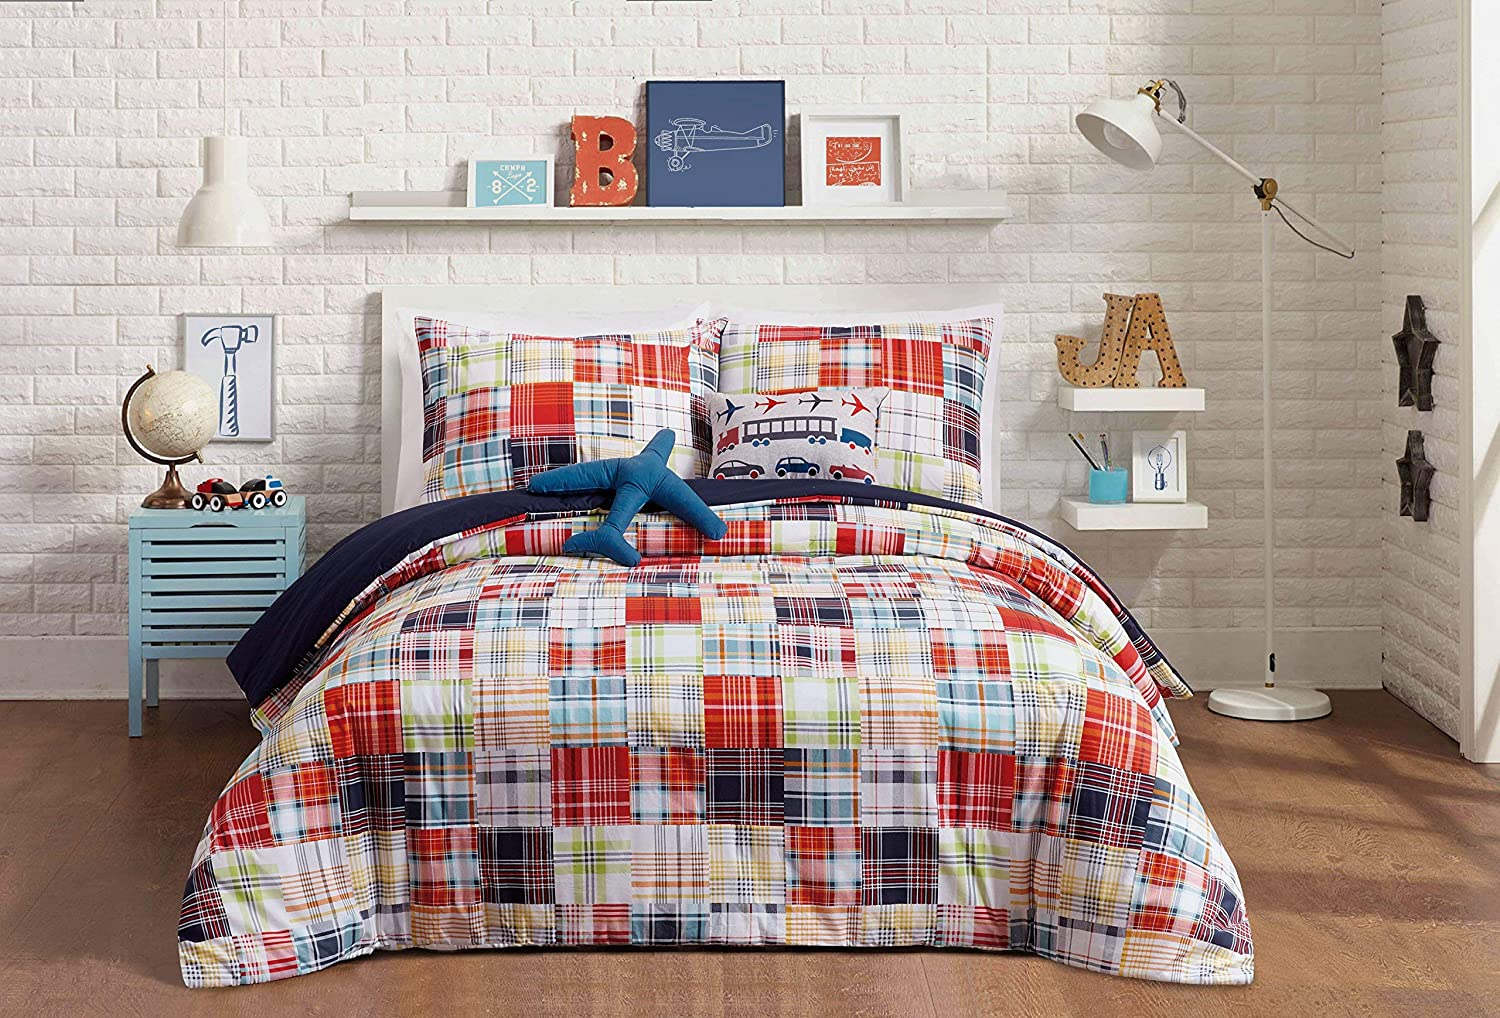 Urban Playground A011017BLEDS Bryce Comforter Set, Full/Queen, 5 Piece